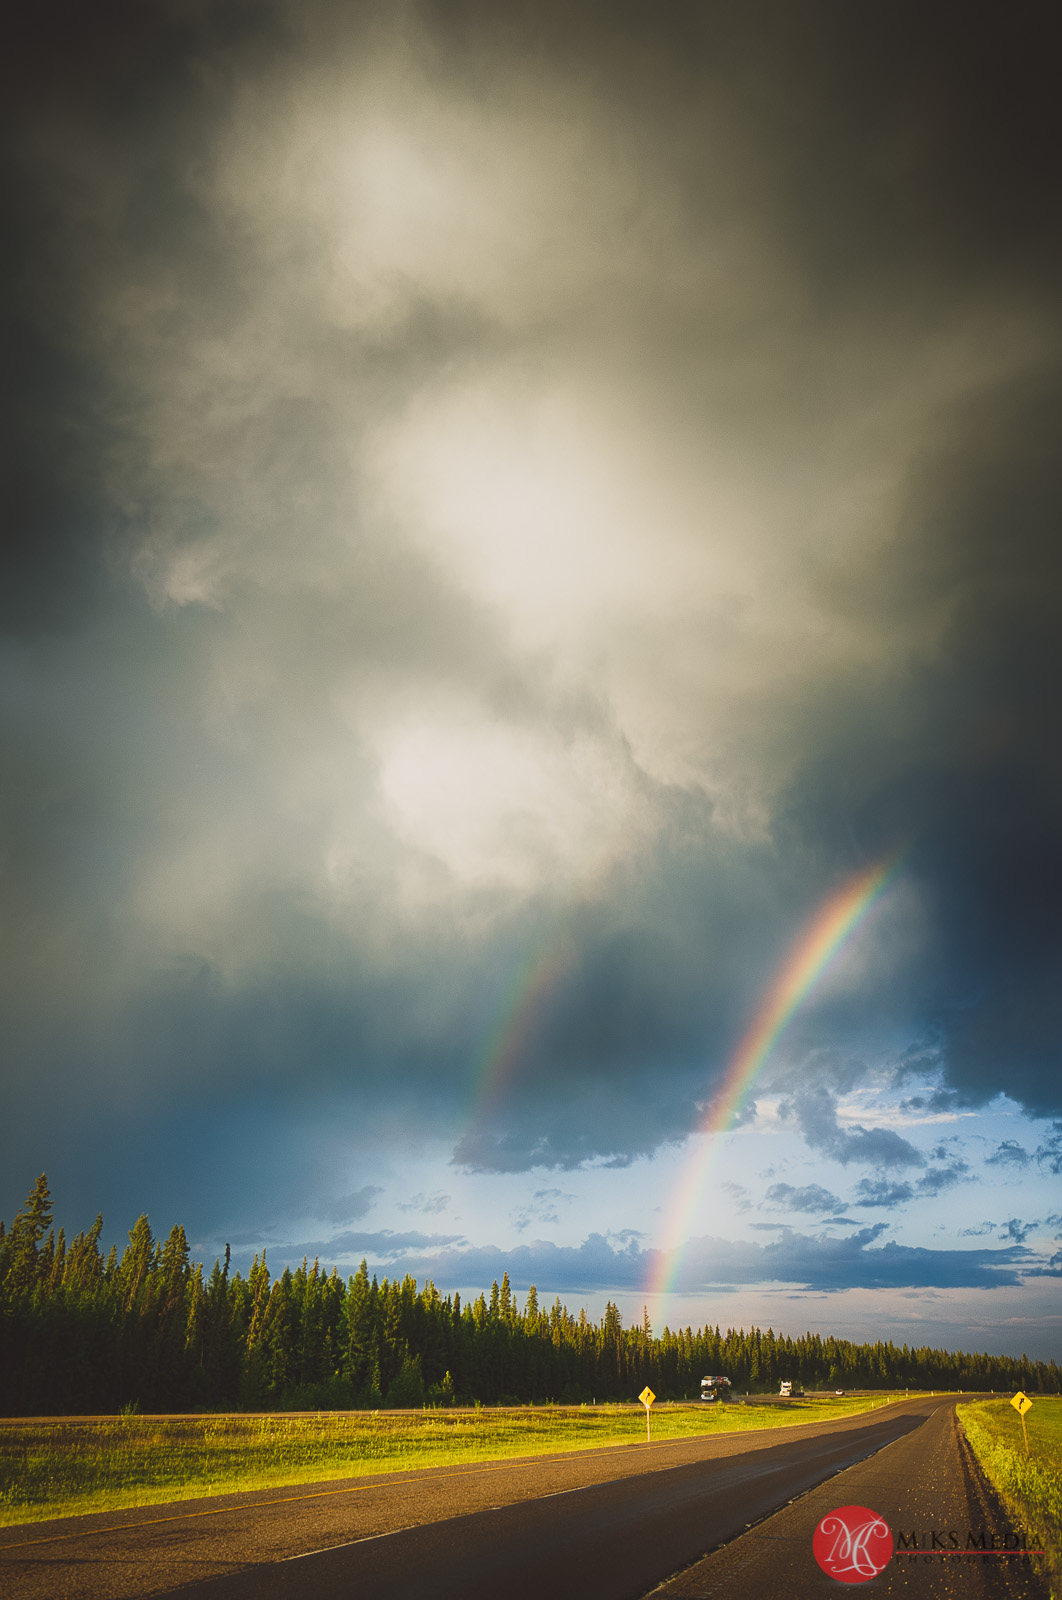 23 highway storm clouds and rainbow.jpg